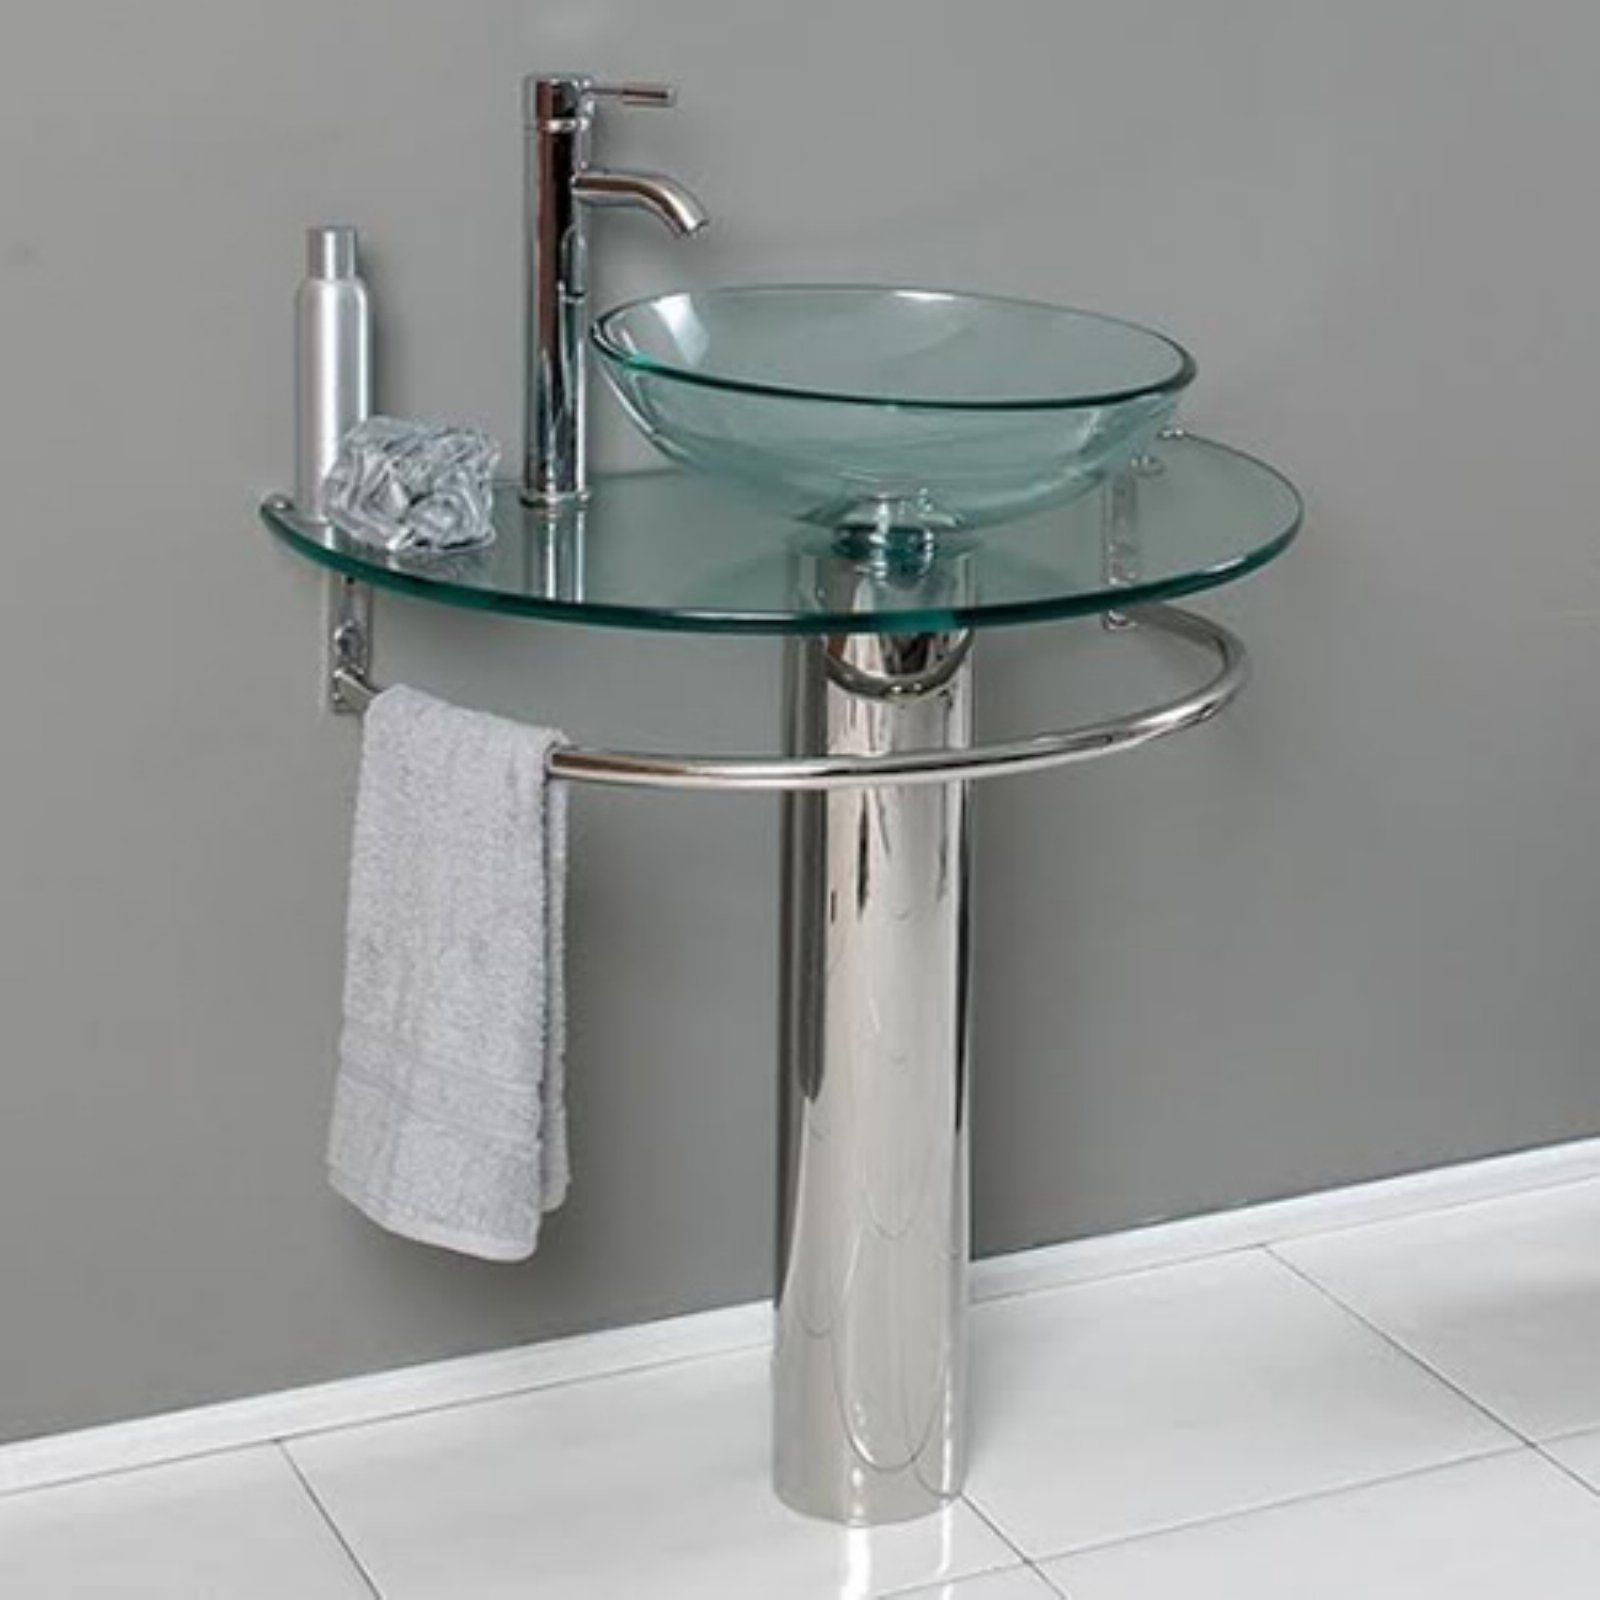 Belvedere 29.5 in. Modern Single Bathroom Vanity with Glass Sink by Belvedere Bath LLC